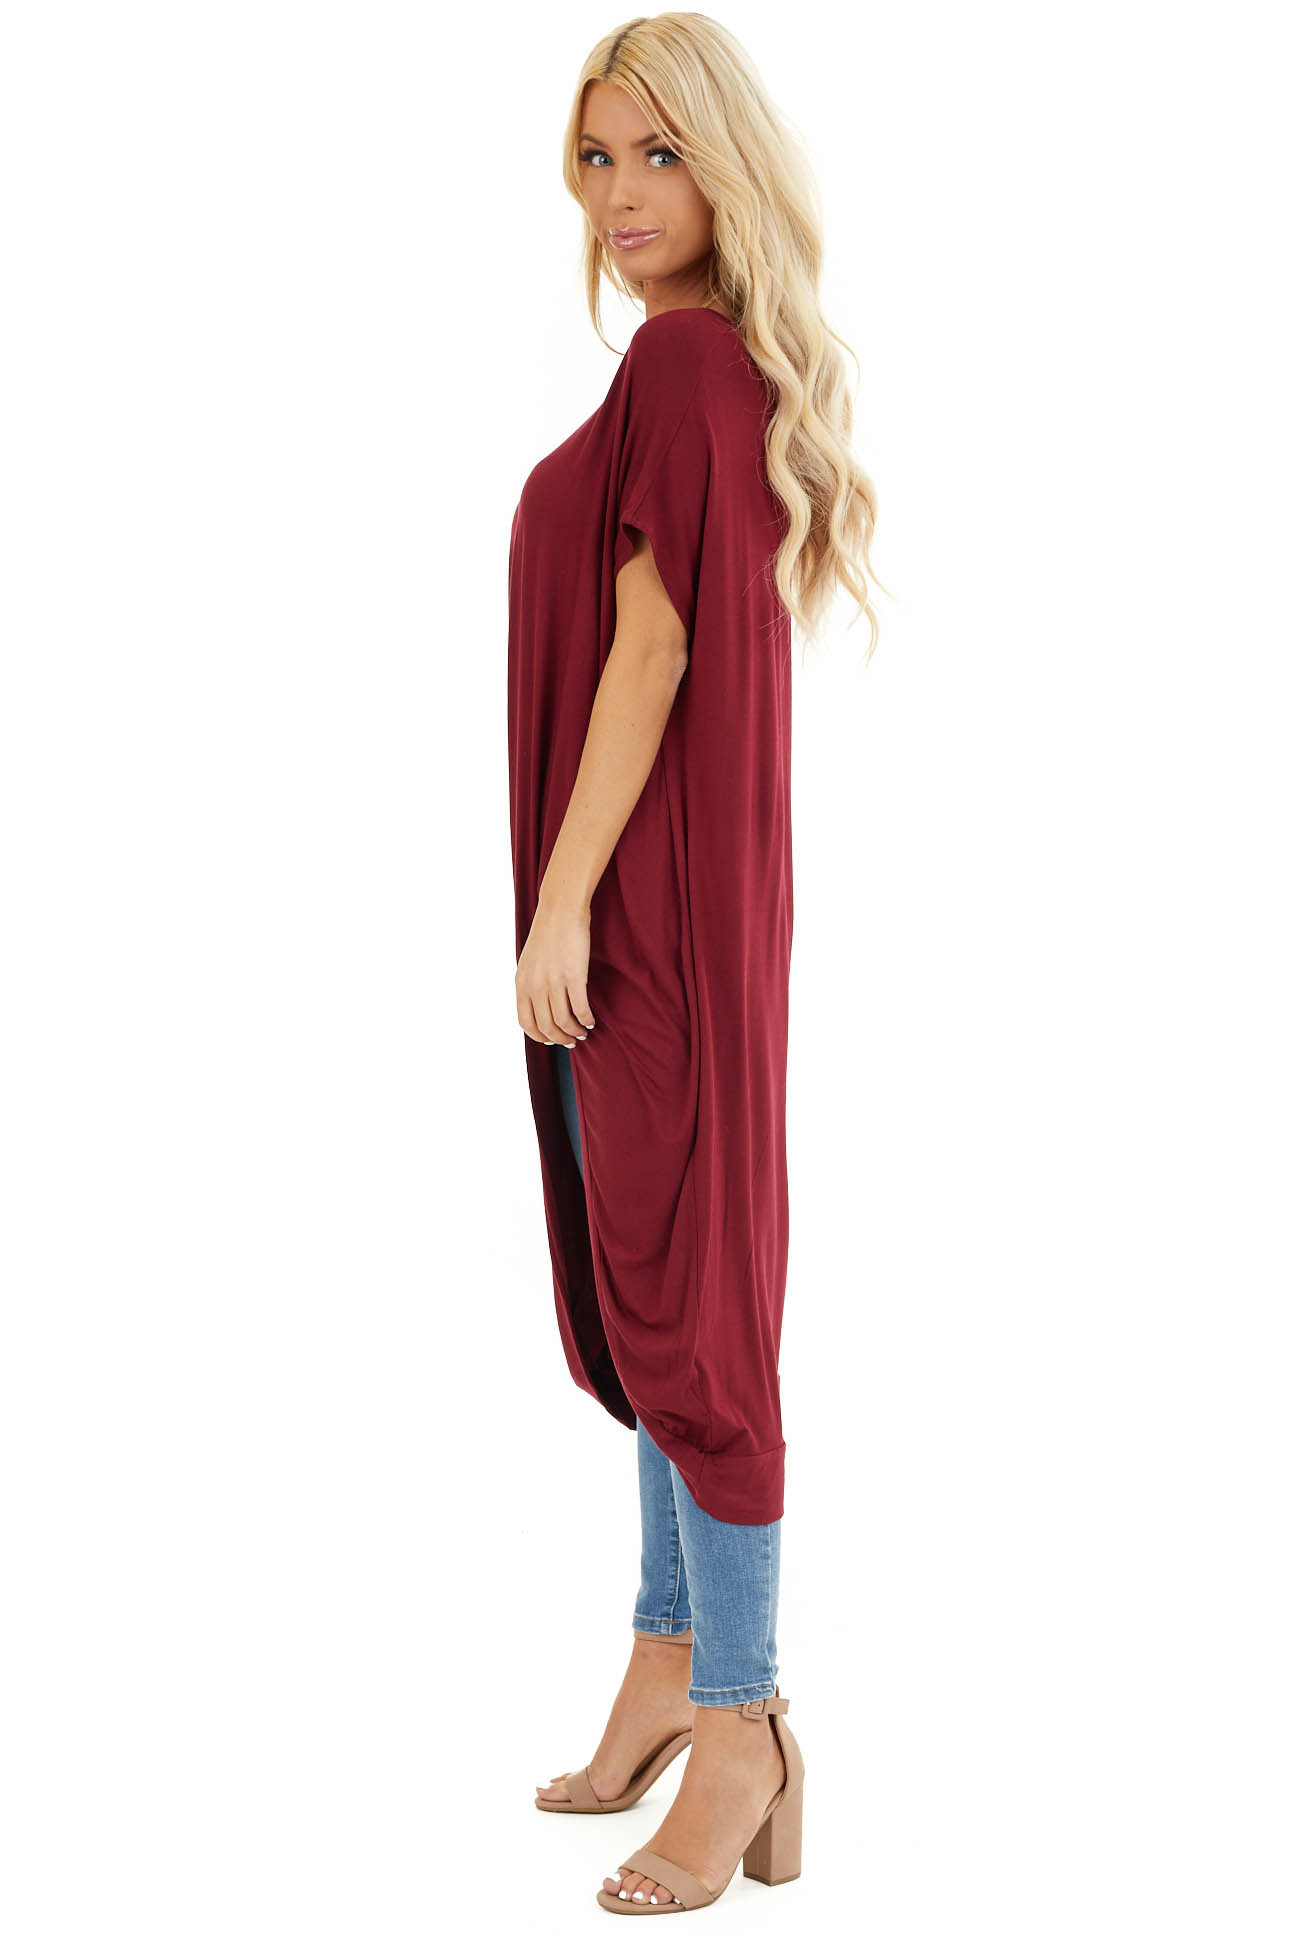 Burgundy Short Sleeve High Low Top with Twist Detail side full body